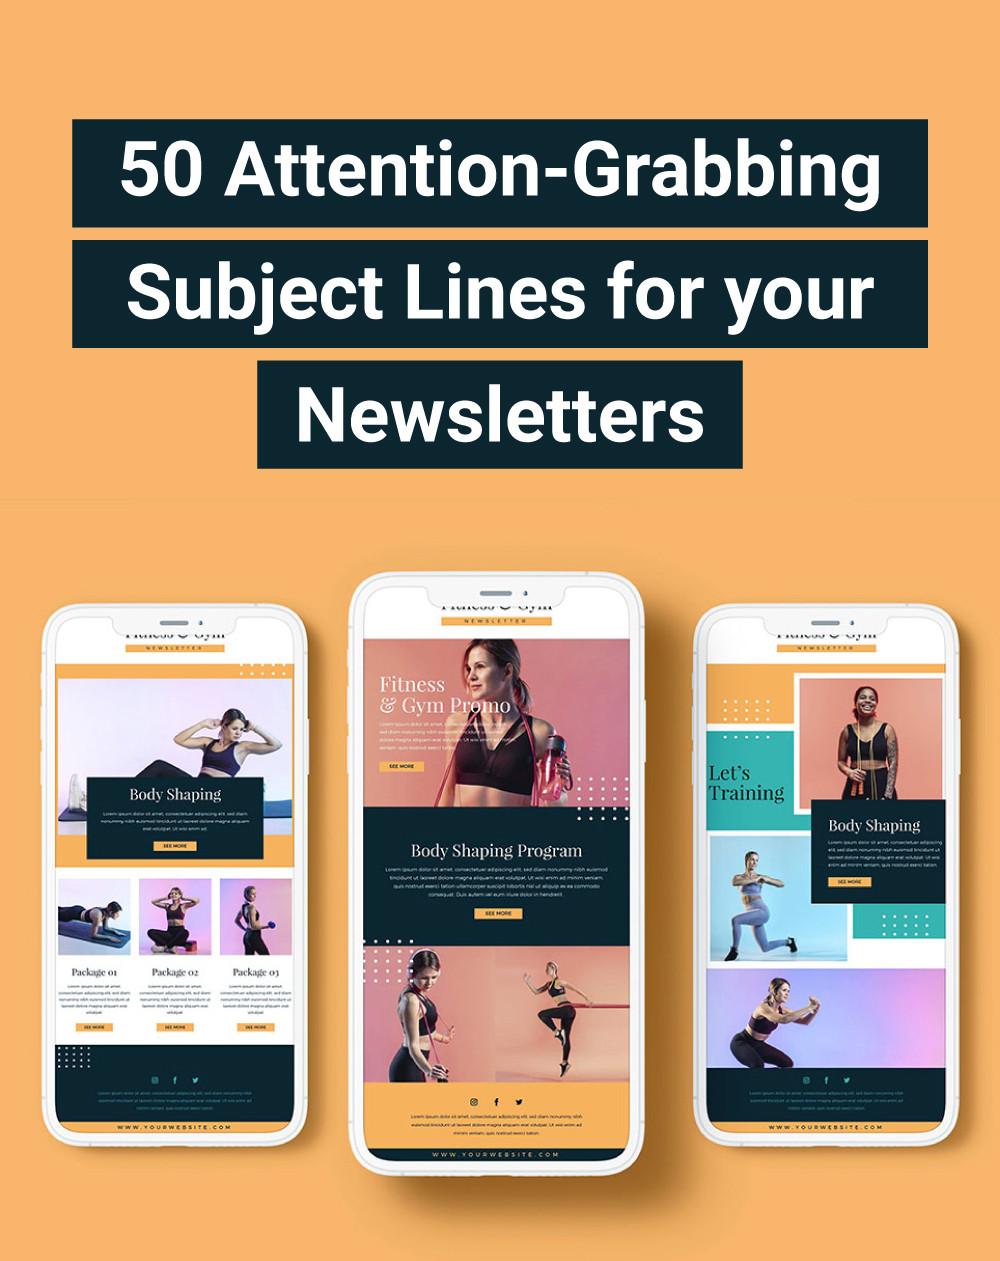 50 Attention-Grabbing Subject Lines for your Newsletters